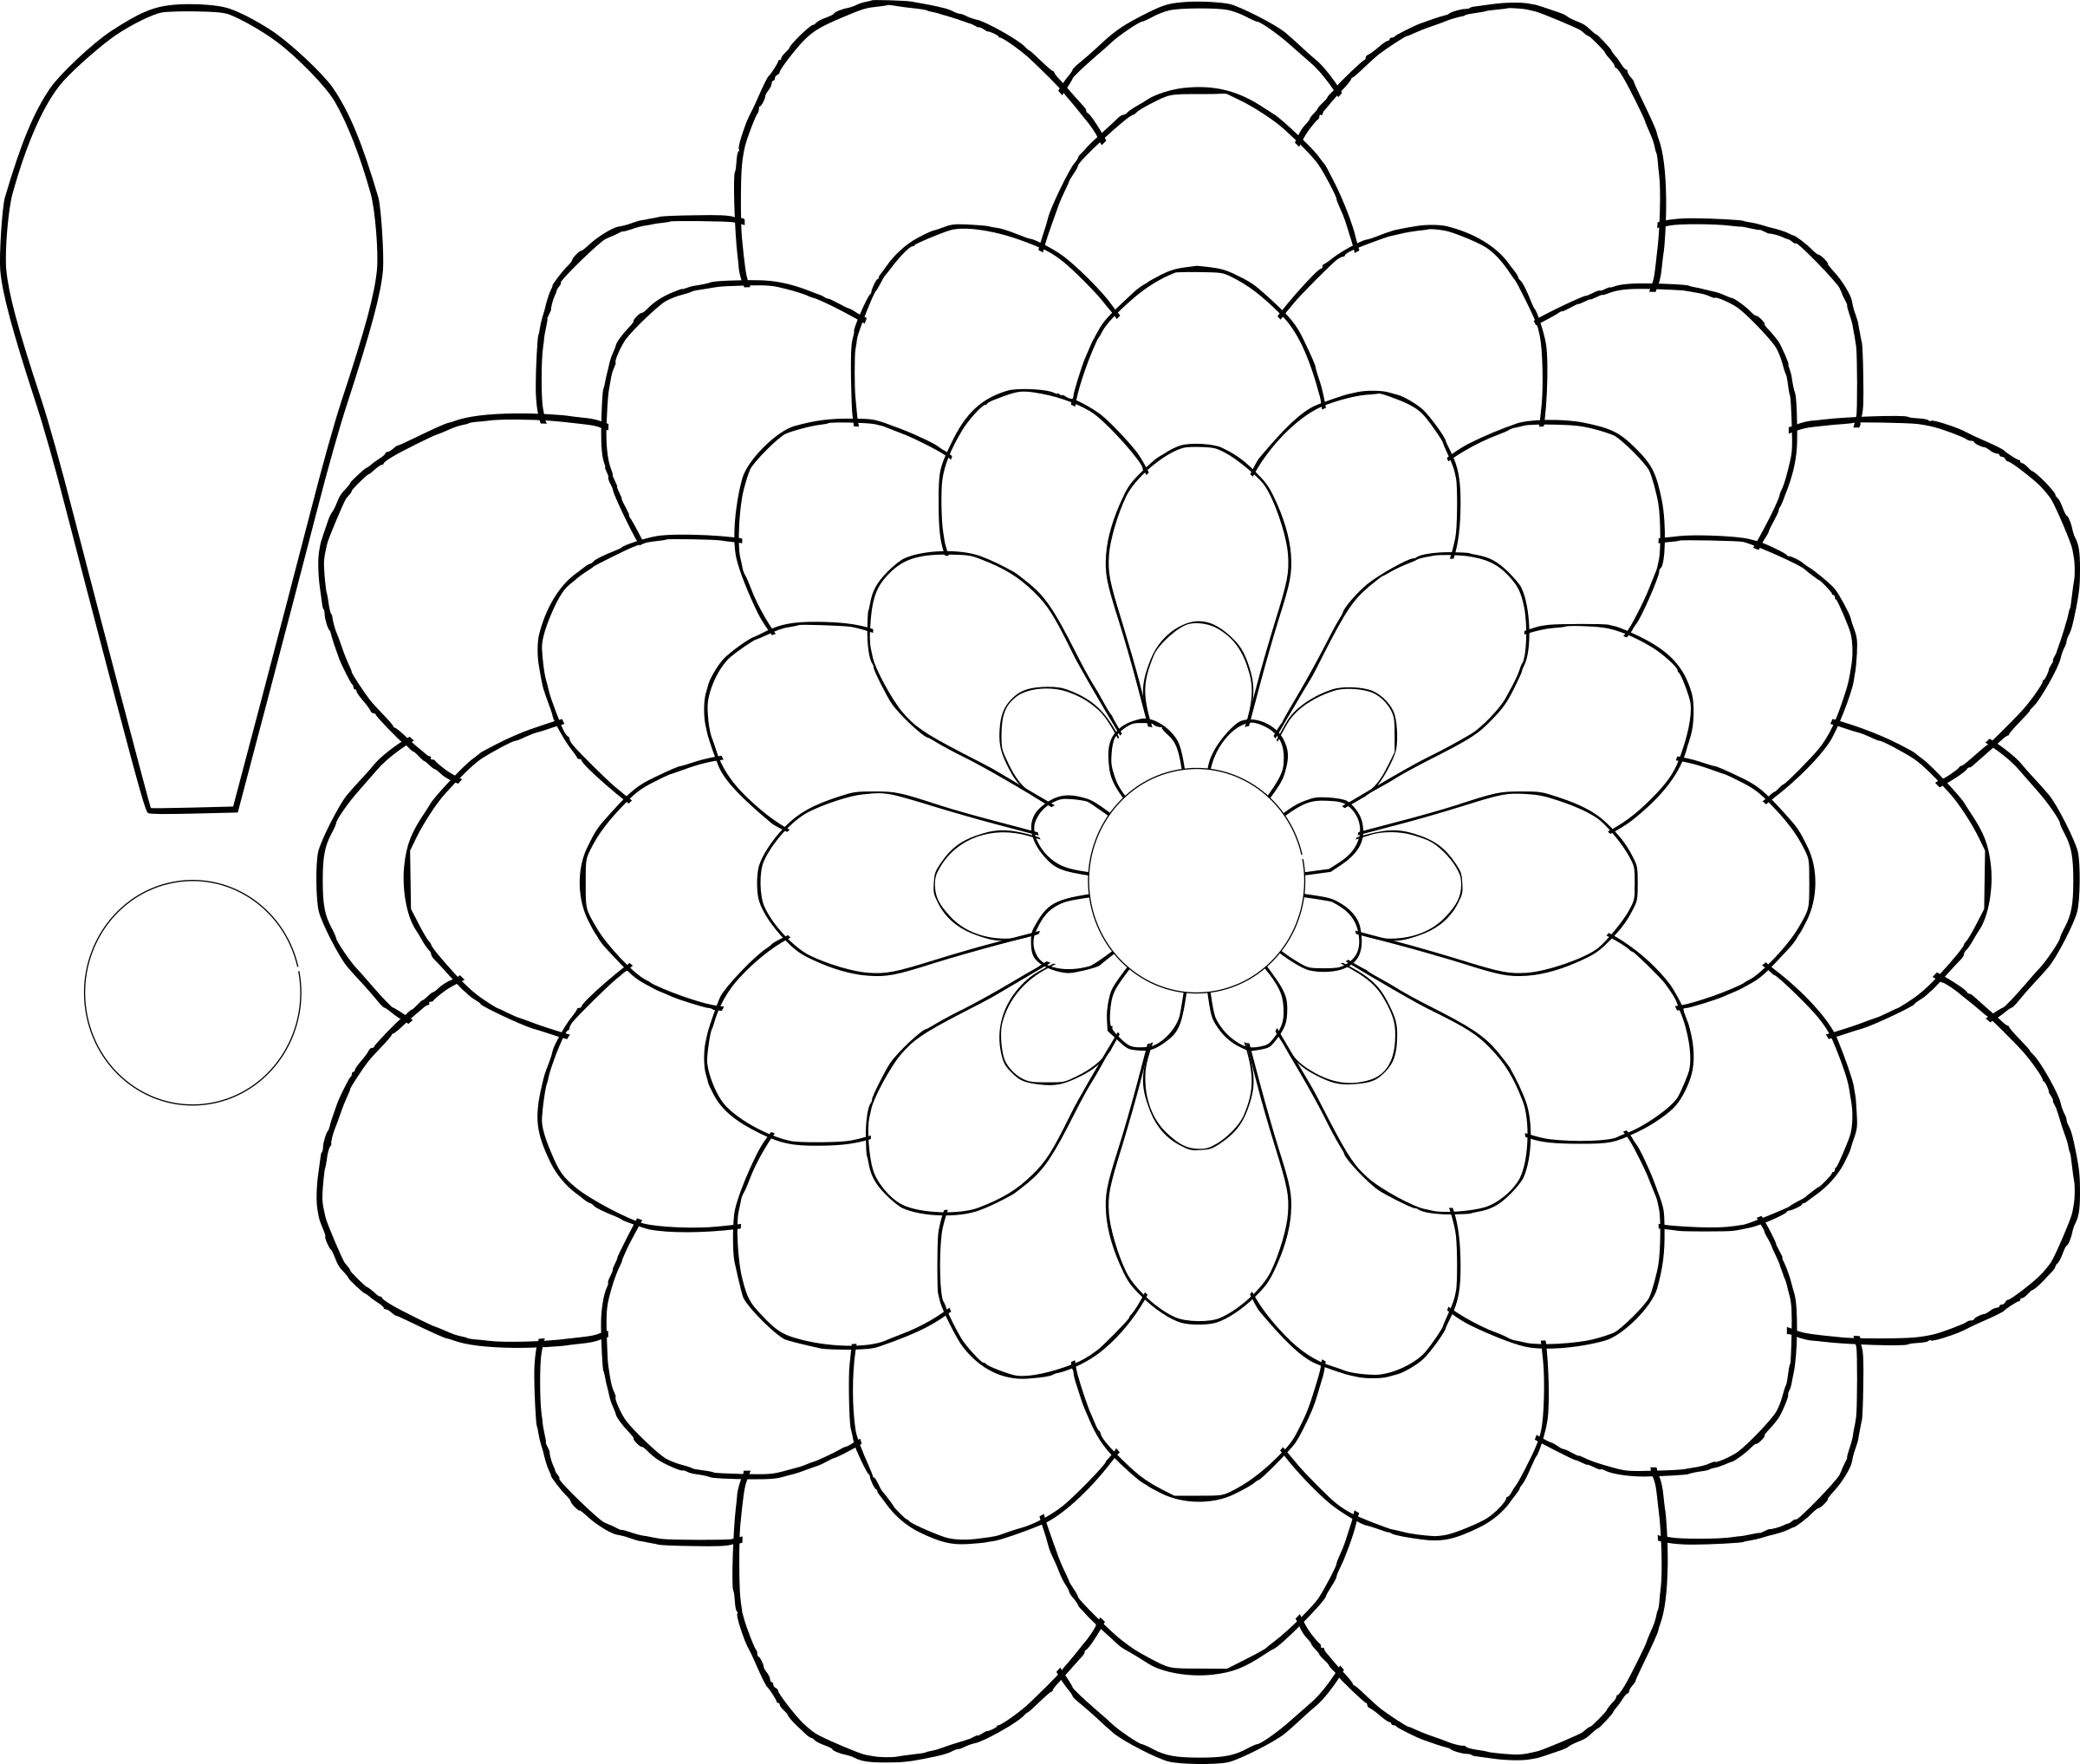 royalty free library Drawing template at getdrawings. Mayflower clipart colour flower.